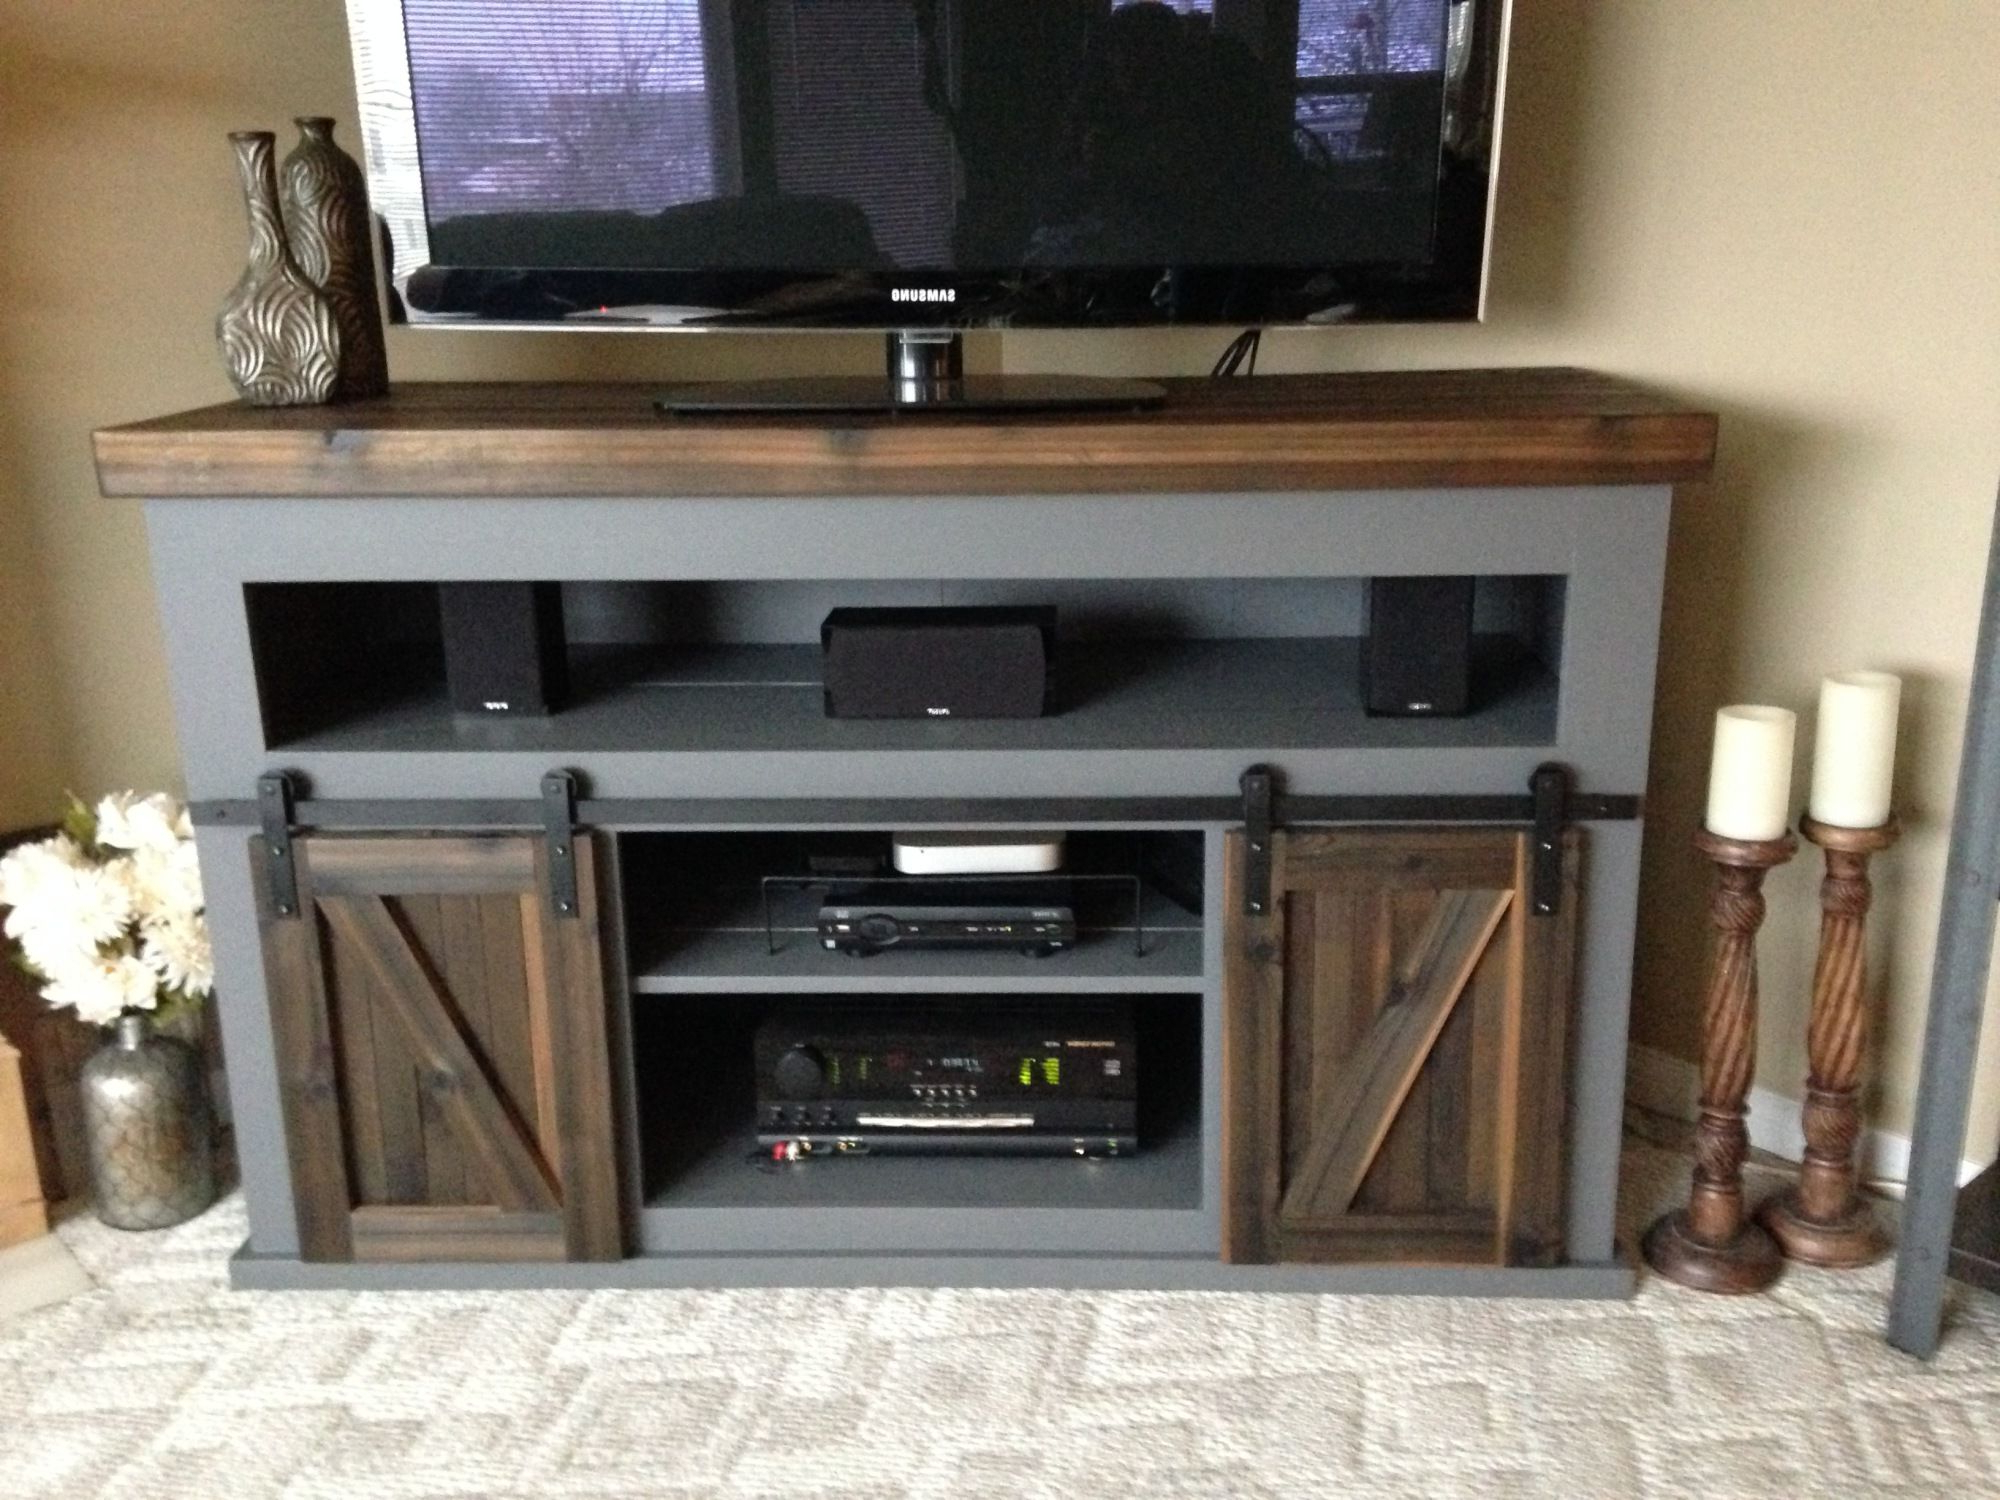 Laurent 50 Inch Tv Stands Intended For Current 19 Amazing Diy Tv Stand Ideas You Can Build Right Now (Gallery 5 of 20)